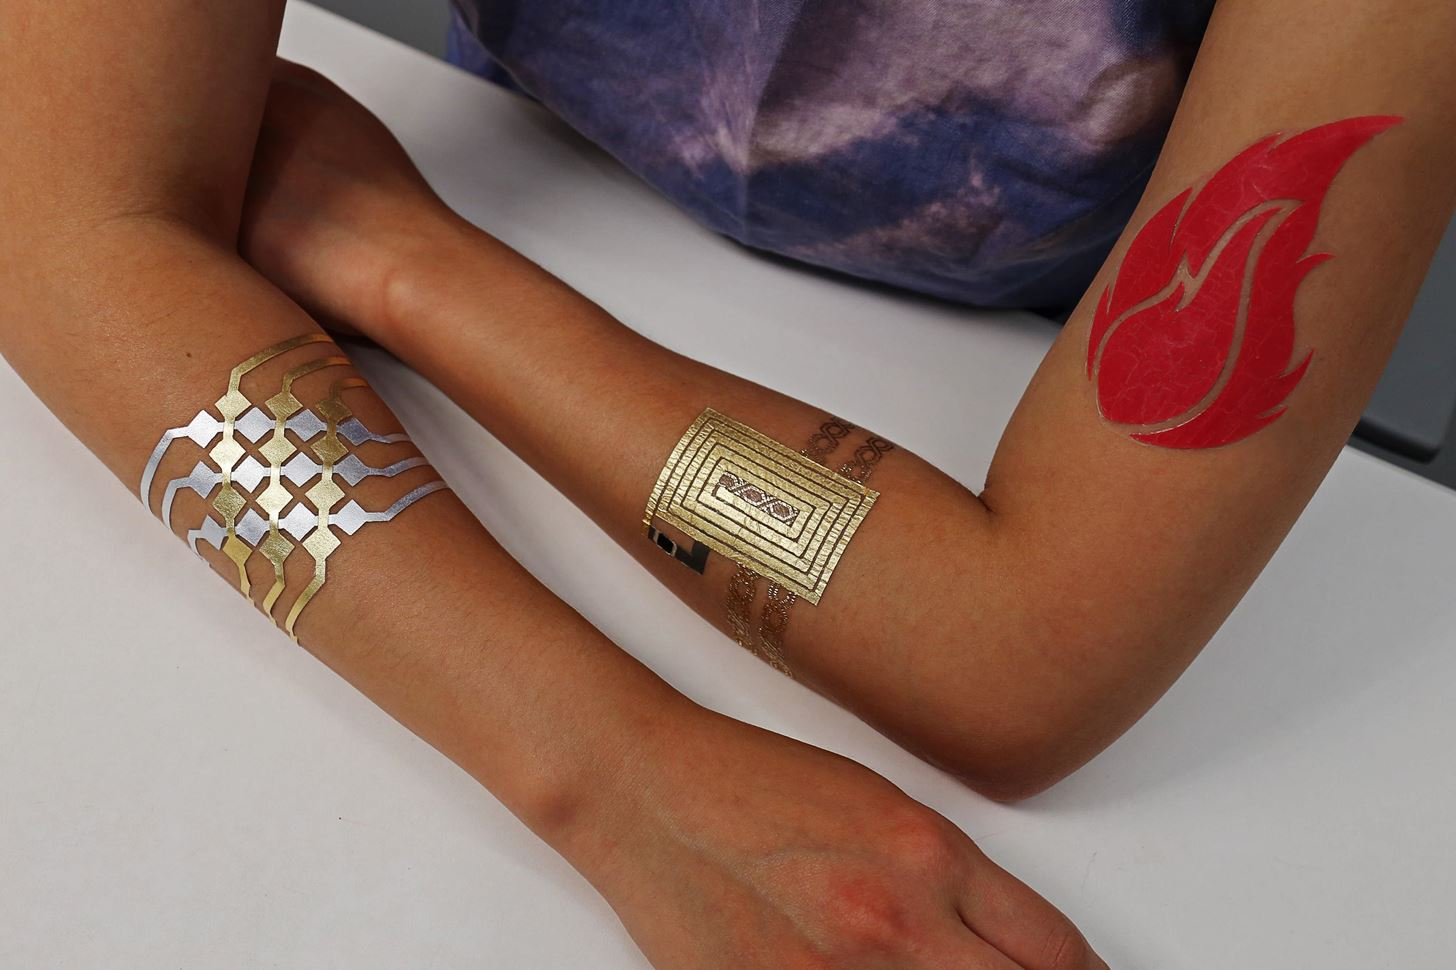 MIT's Temporary Tattoos Turn Your Skin into a Touchpad